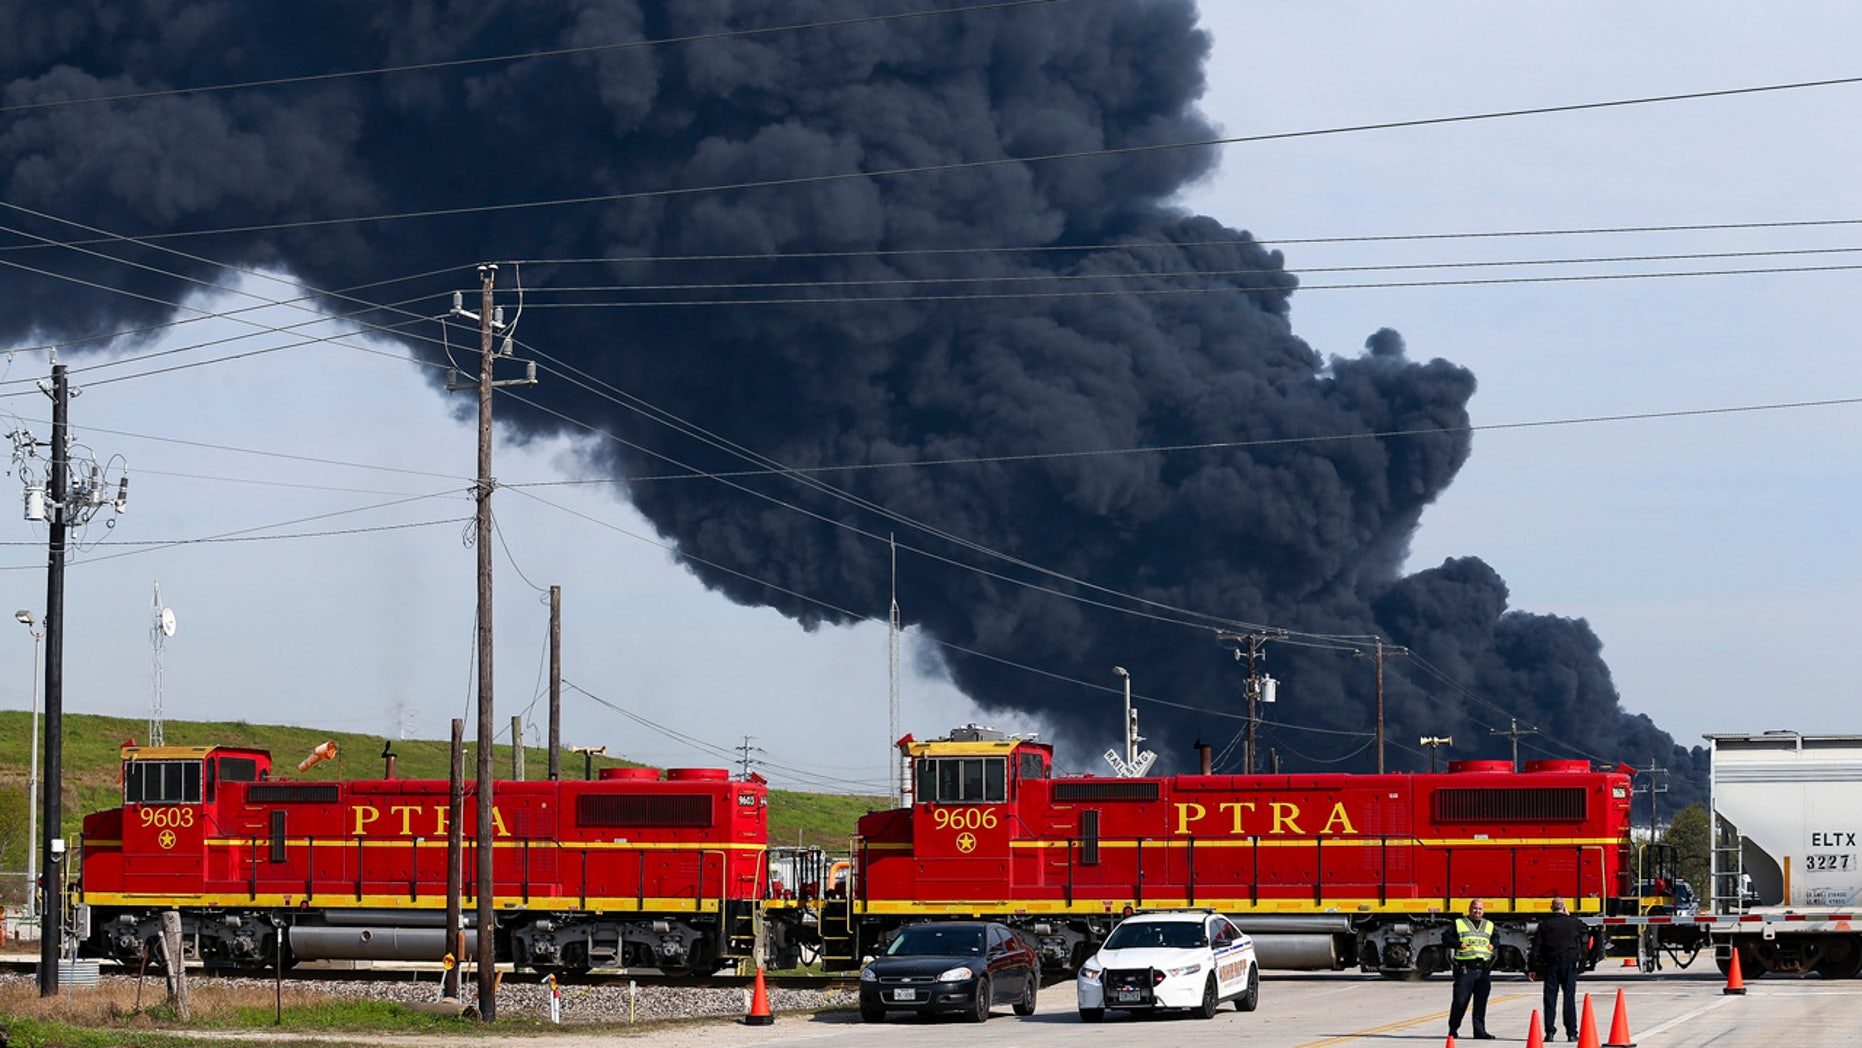 Firefighters battling the petrochemical fire at Intercontinental Terminals Company, which grew in size due to a lack of water pressure earlier this week in Deer Park, Texas. (Godofredo A. Vasquez/Houston Chronicle via AP)